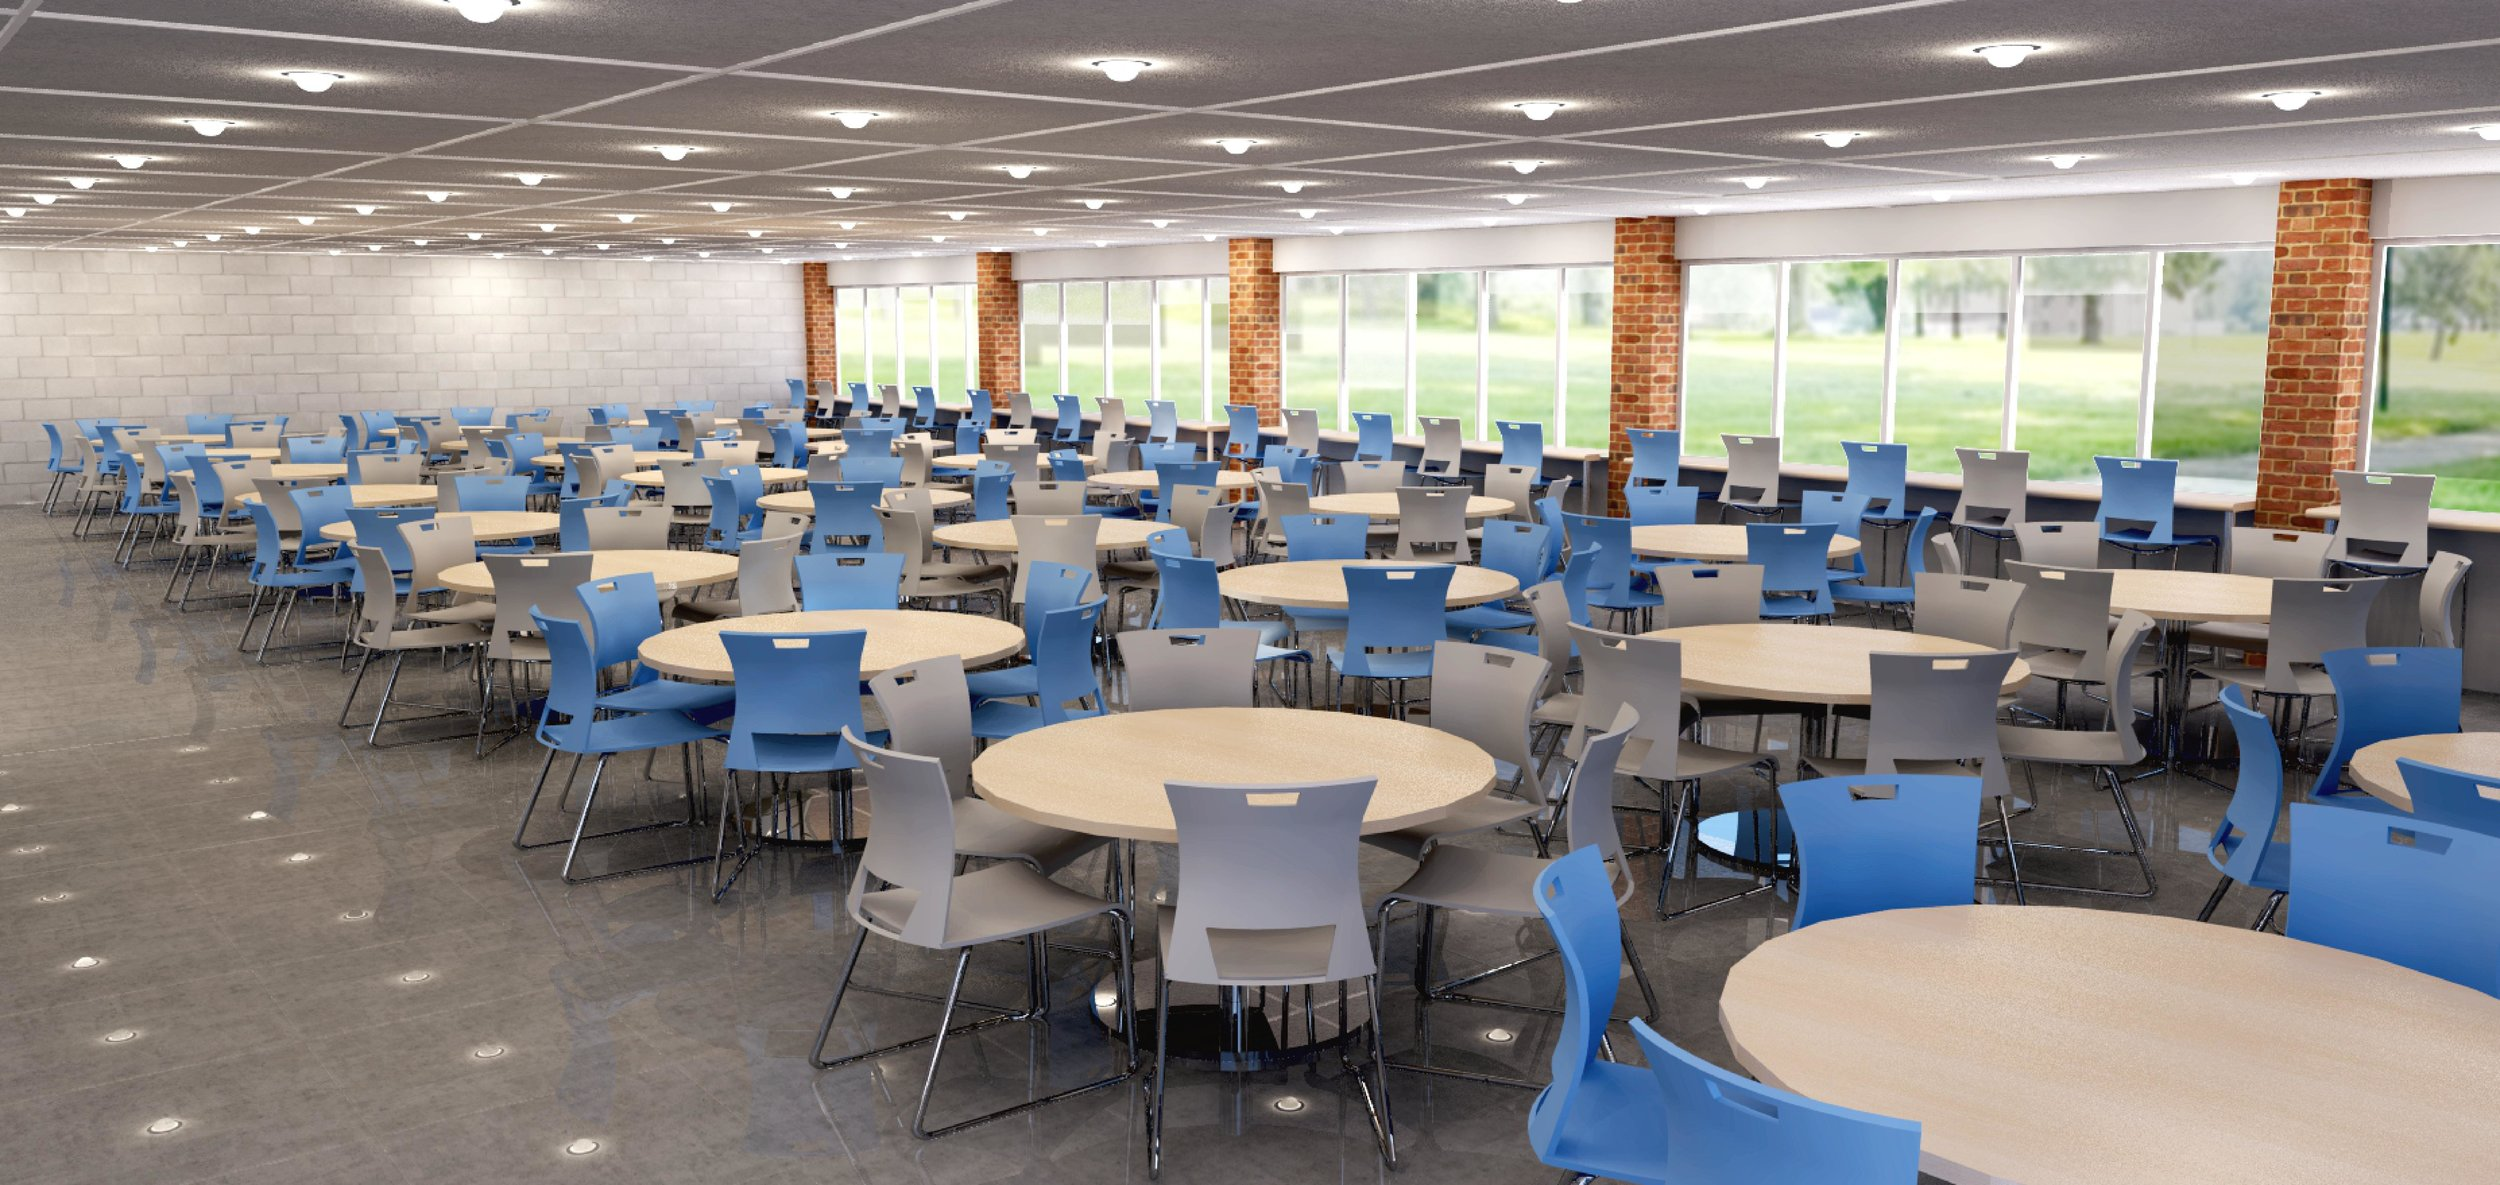 Rendering of proposed cafeteria dining hall